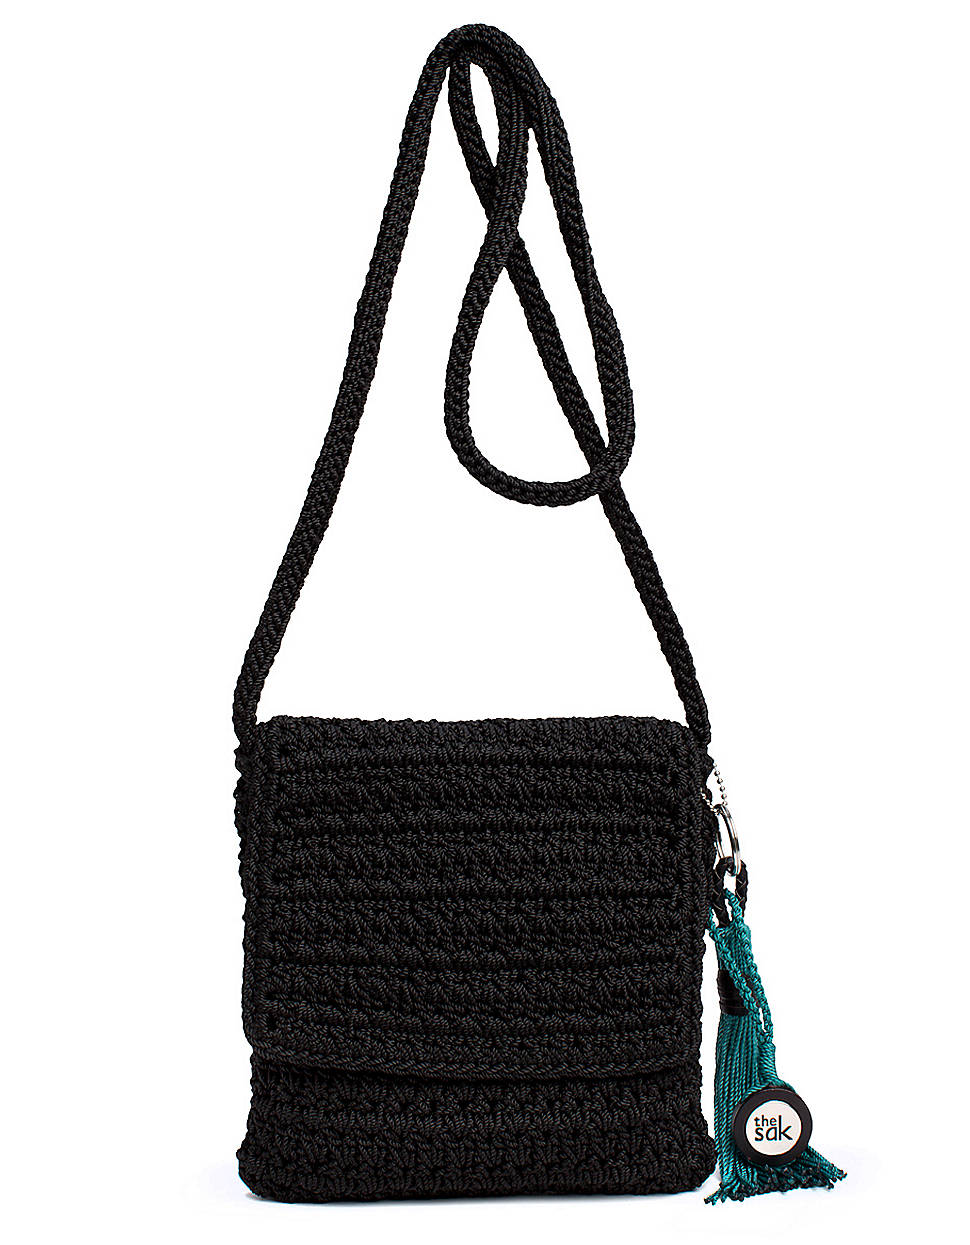 The Sak Bags Crochet : The Sak Casual Classics Crochet Flap Shoulder Bag in Black Lyst